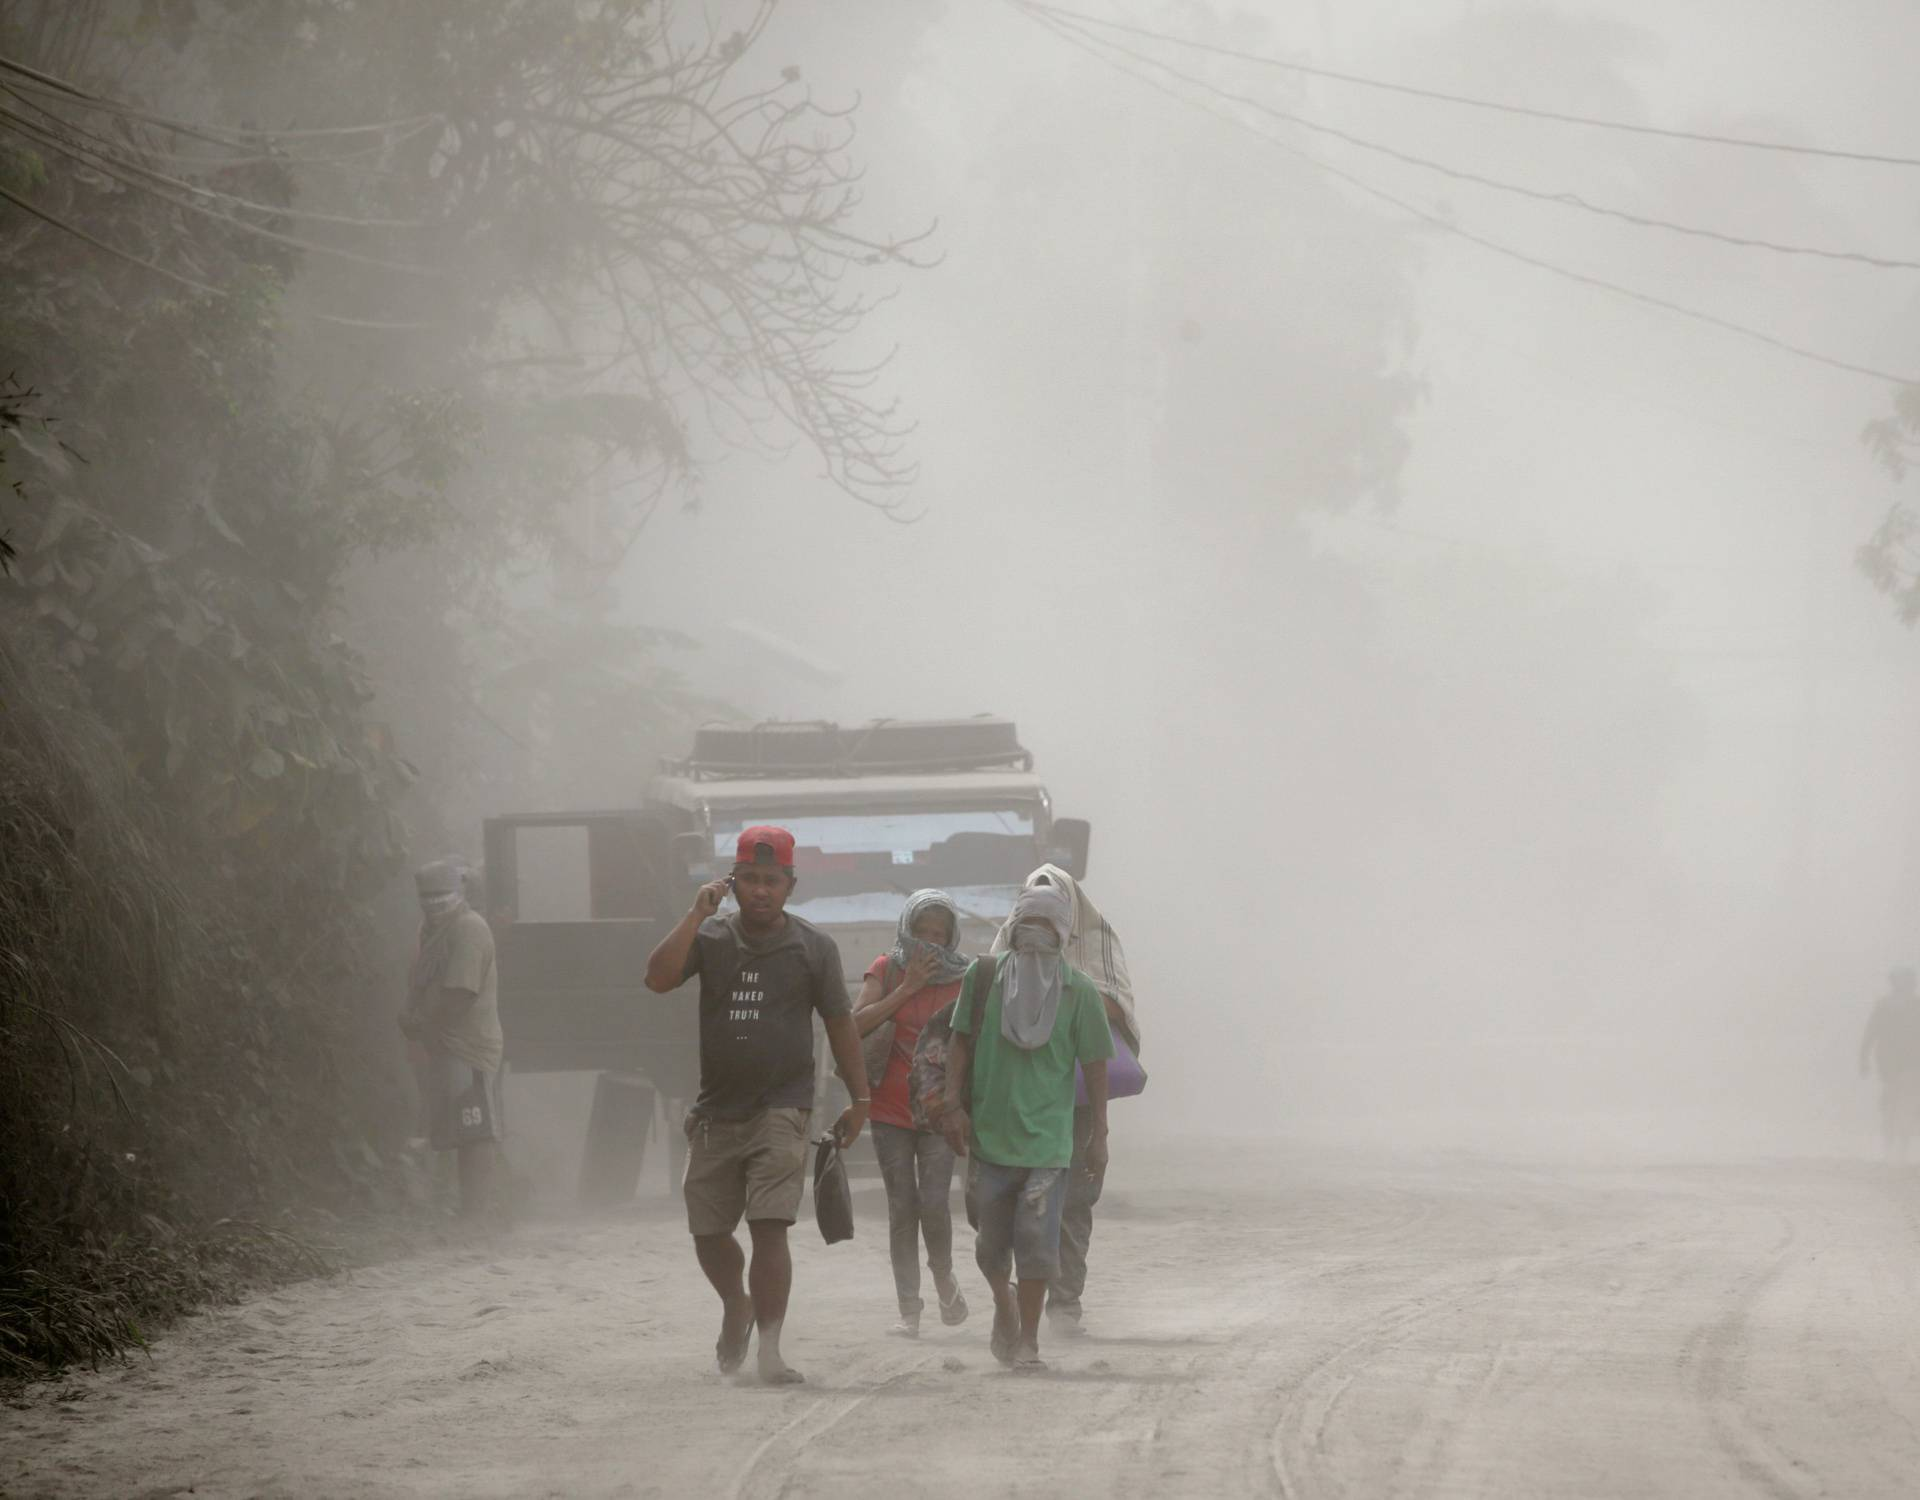 Residents living near the erupting Taal Volcano evacuate Agoncillo